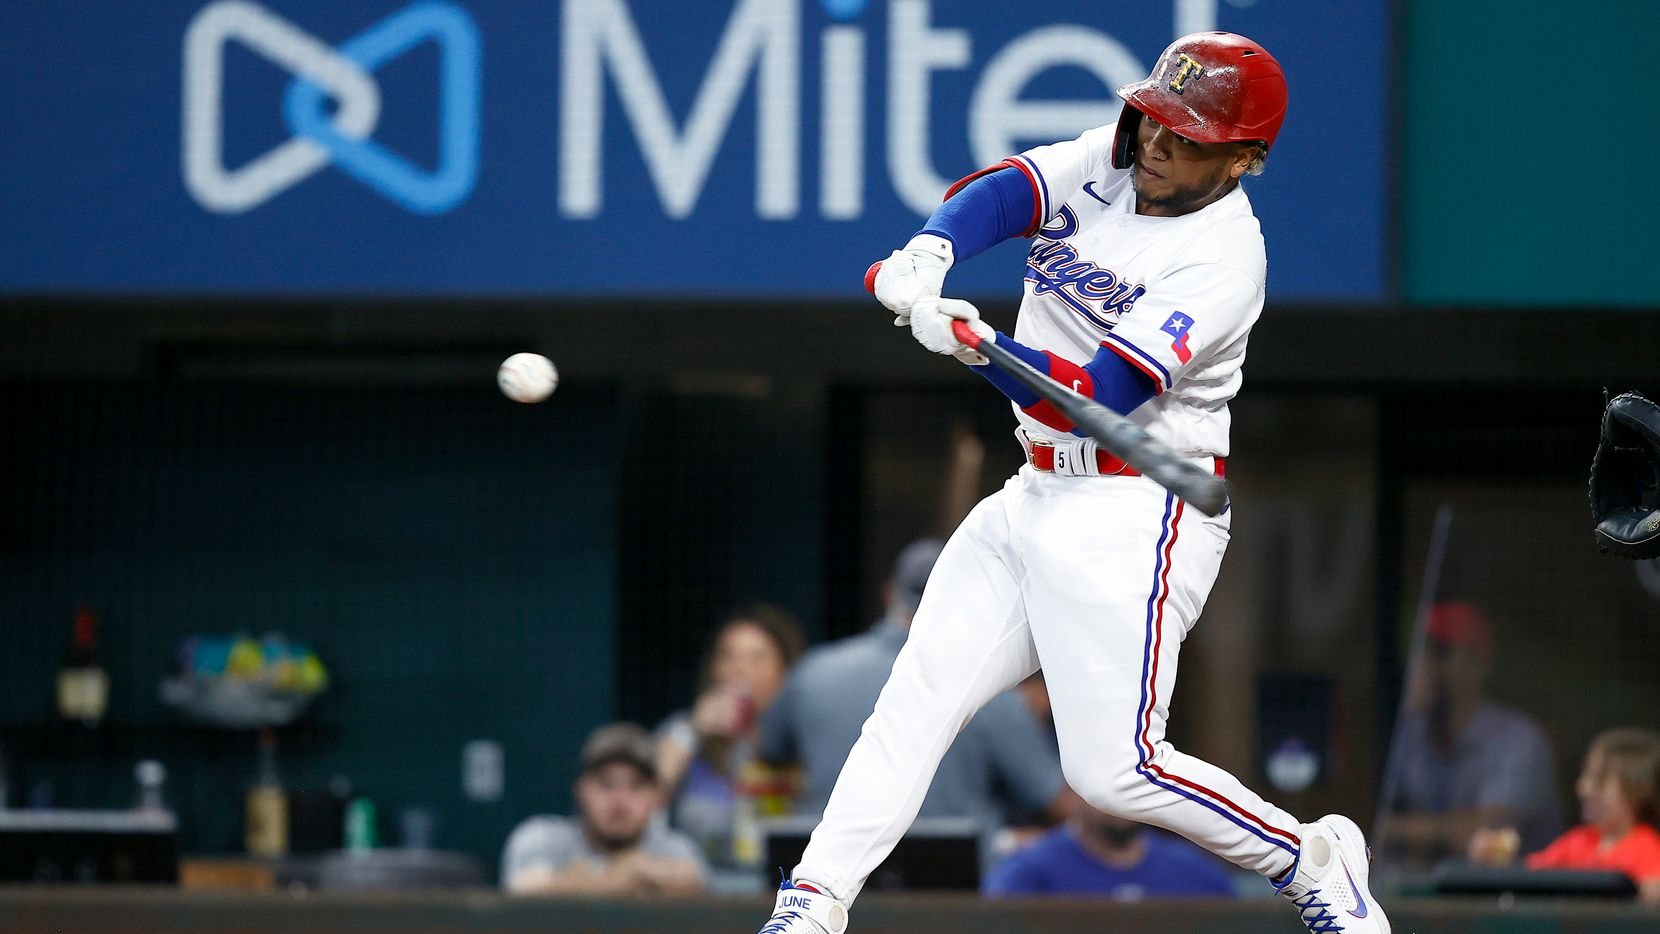 Willie Calhoun #5 of the Texas Rangers hits a double against the New York Yankees in the bottom of the third inning at Globe Life Field on May 20, 2021 in Arlington, Texas.